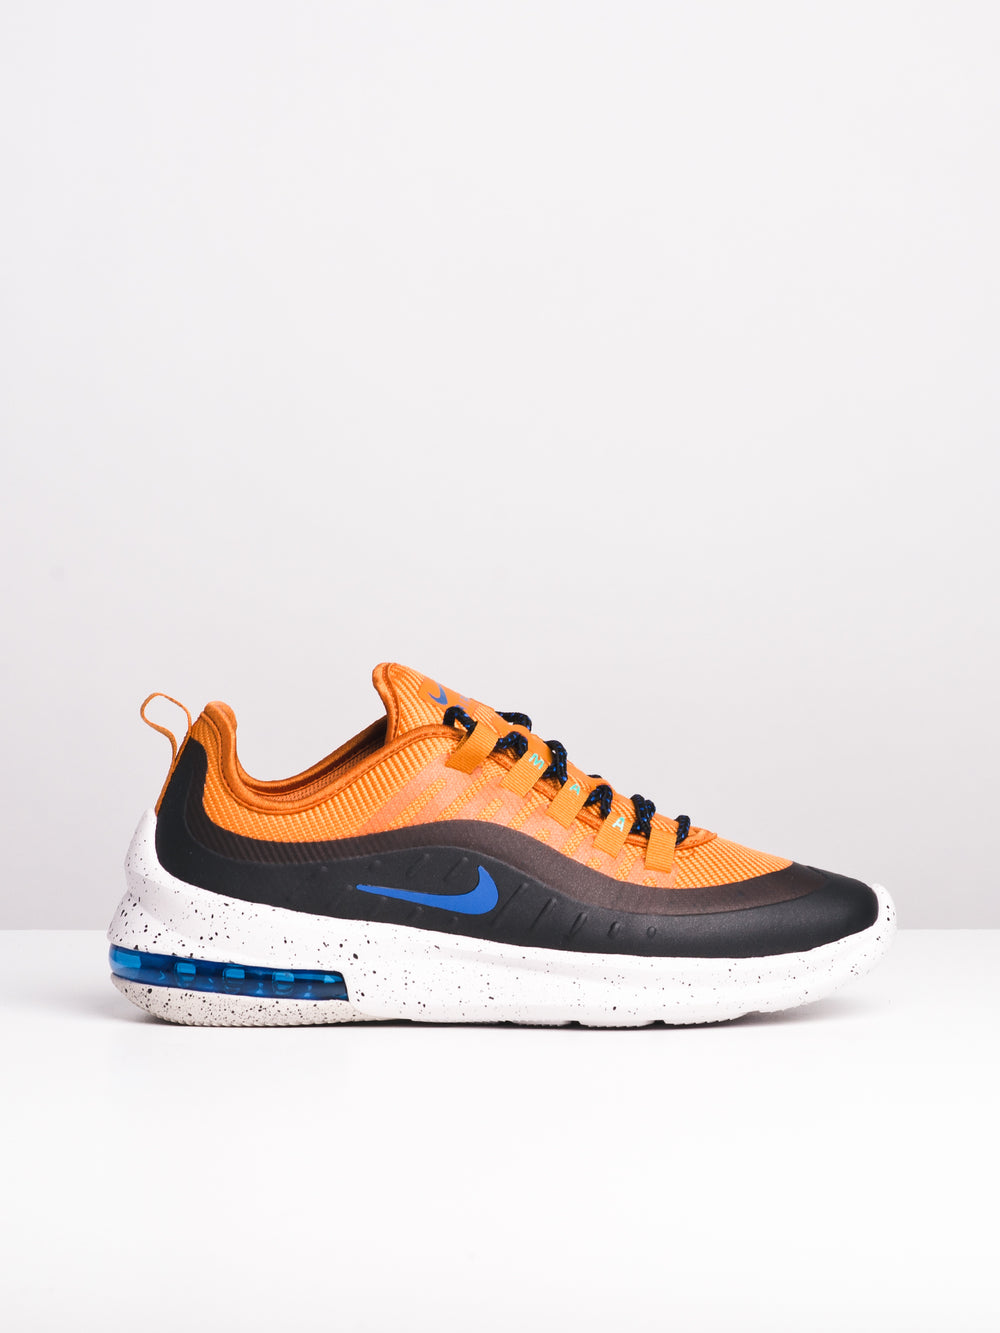 846f08e489 MENS AIR MAX AXIS PREM